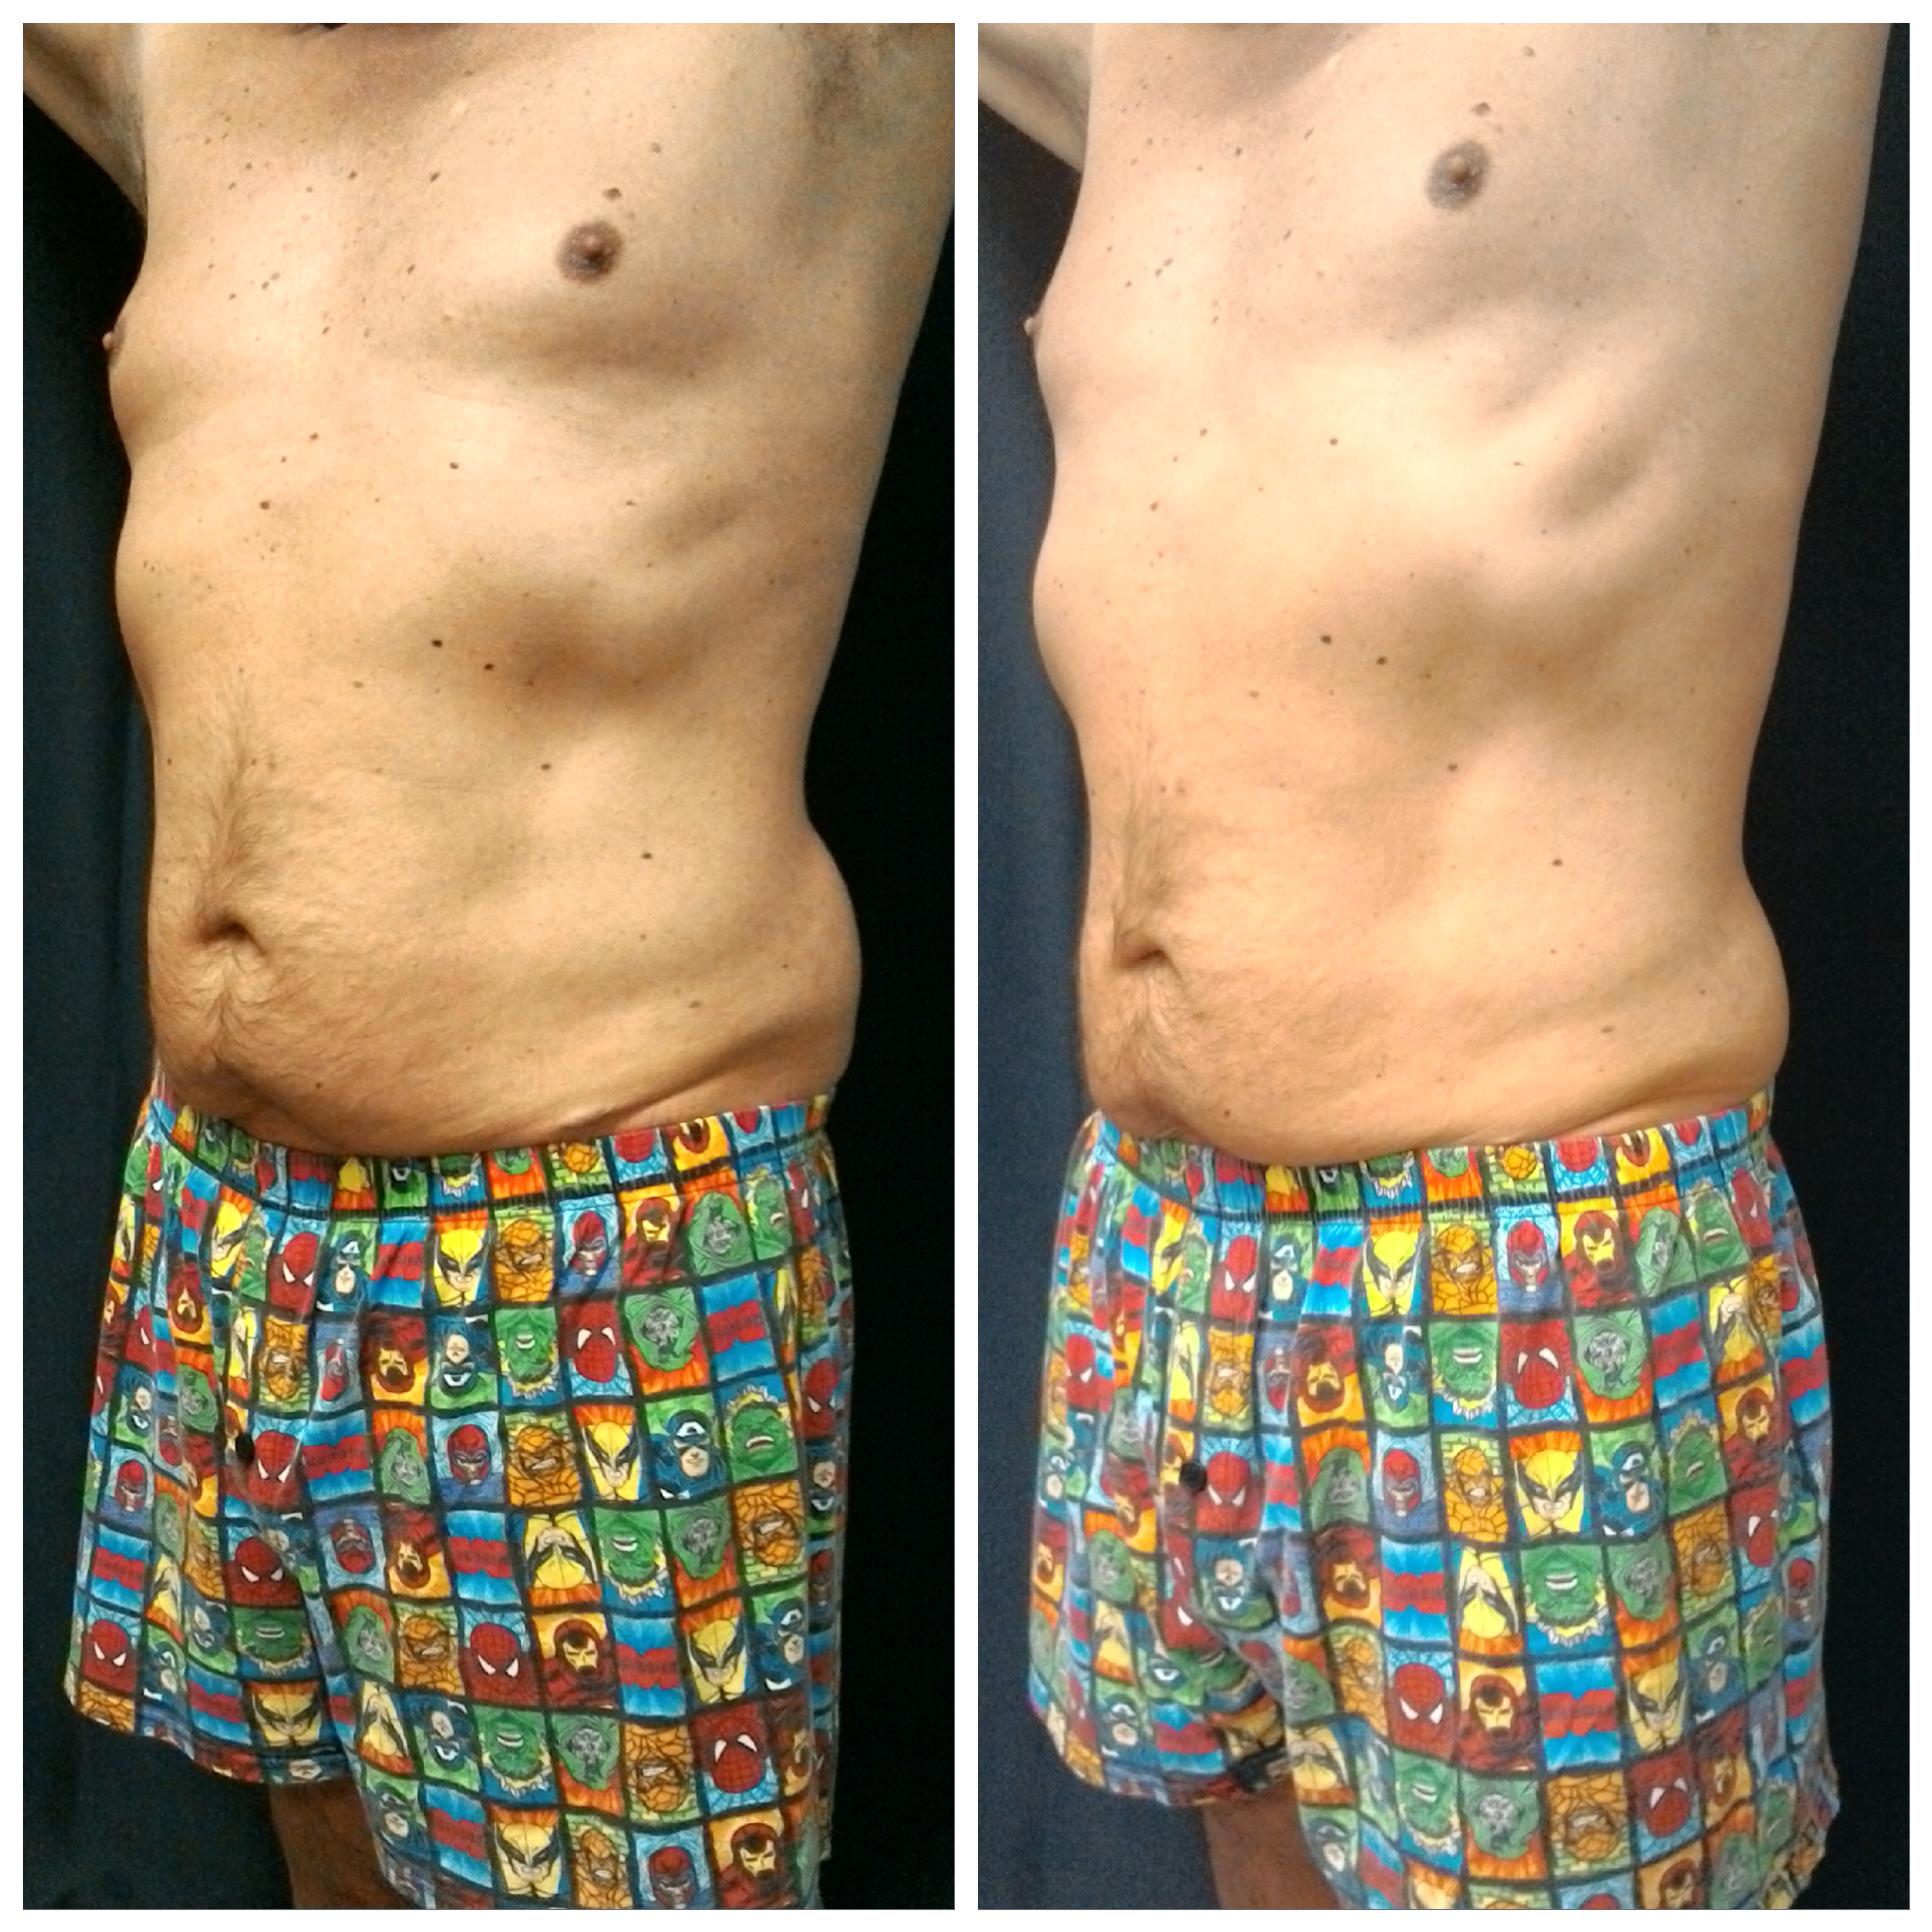 54 year old male 6 weeks after one treatment of flanks and lower abdomen.                            4 inches lost with SculpSure